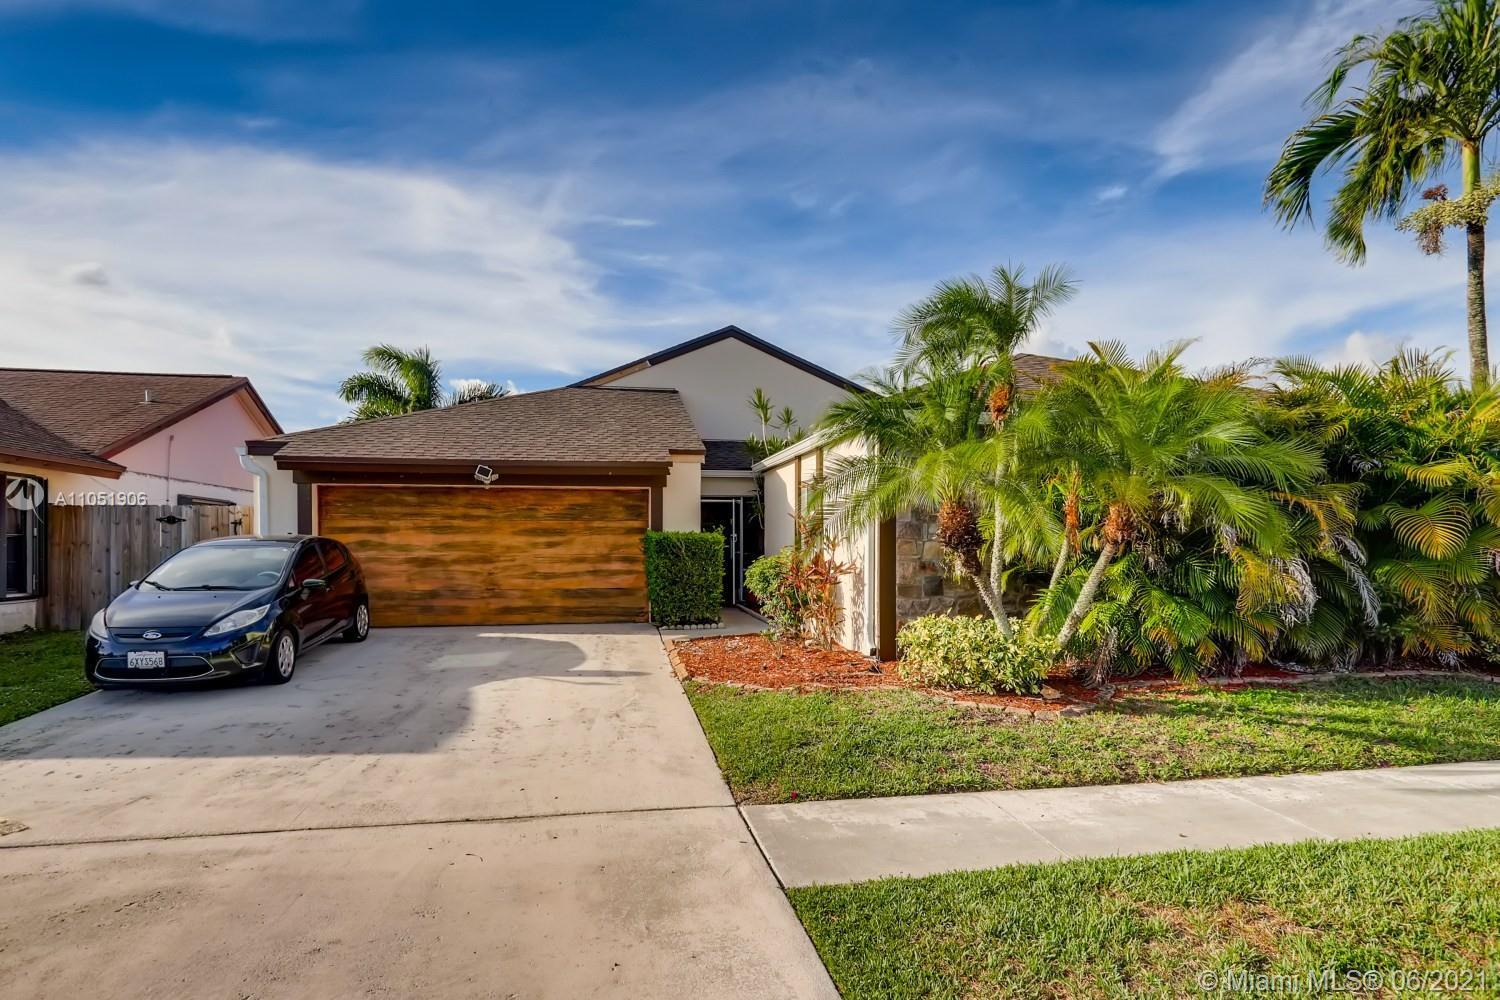 Completely renovated. Pass the tropical landscaping and screened-in porch on your way inside, where